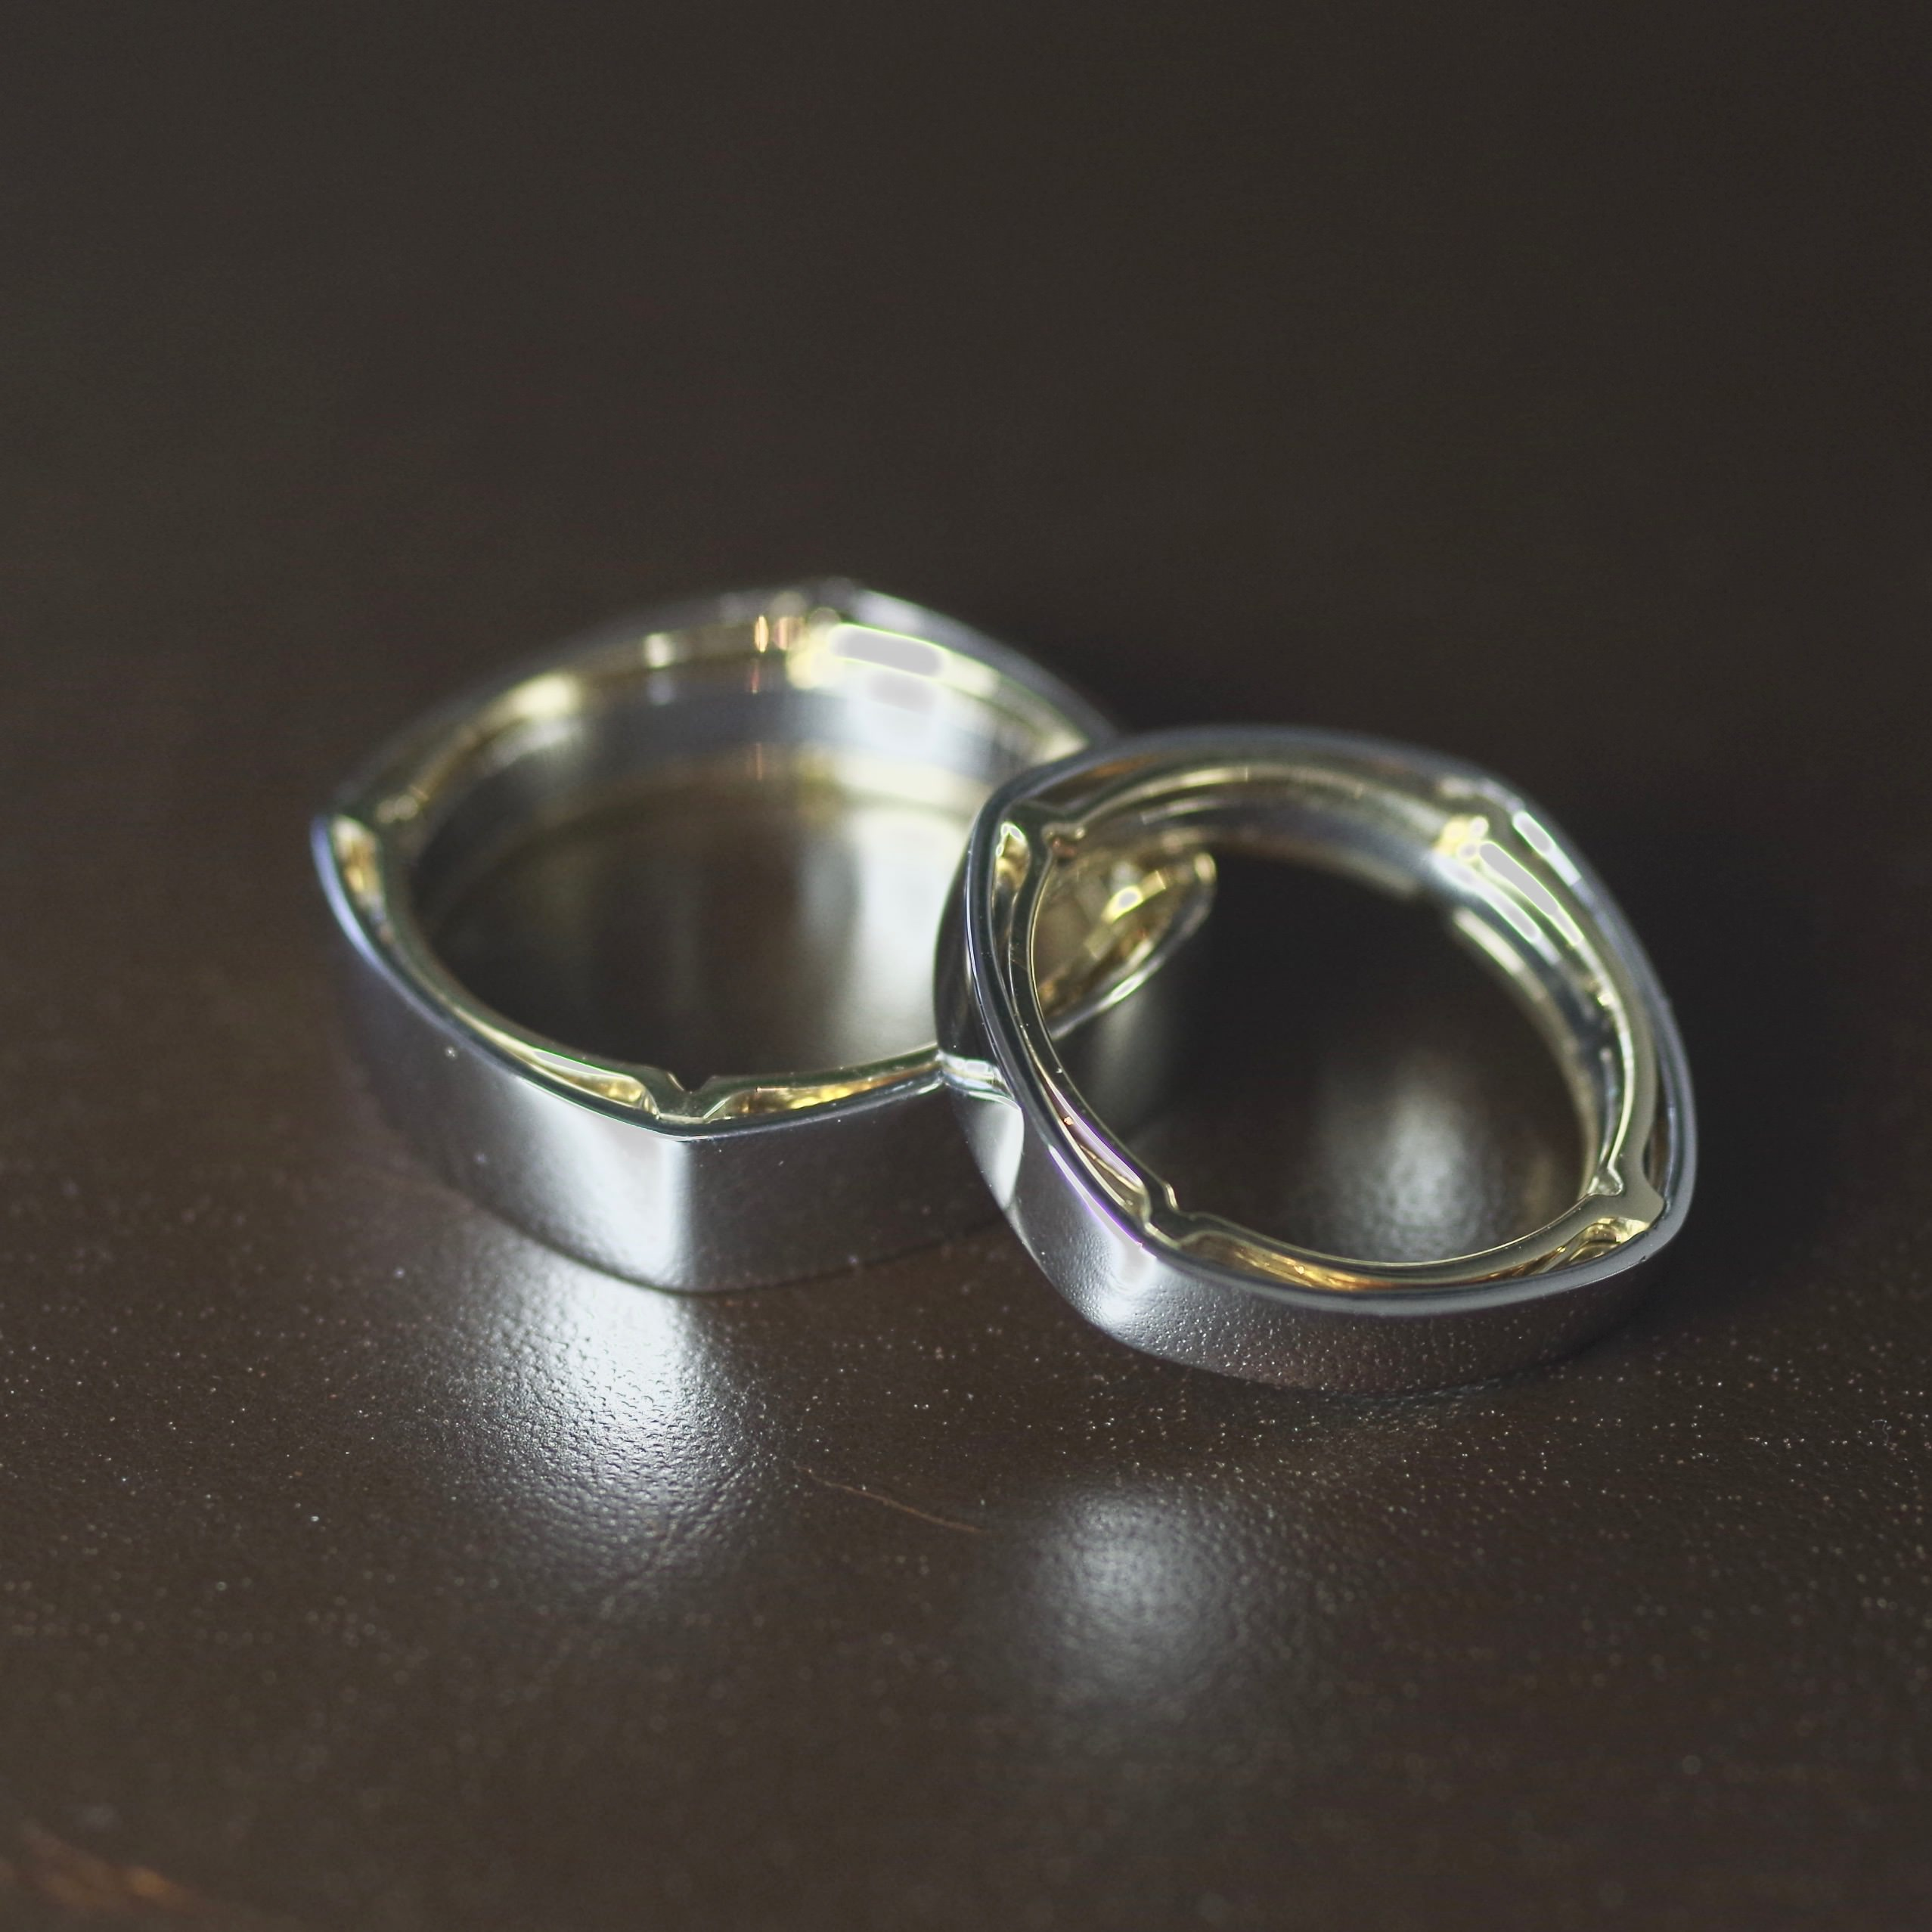 Coupleling Palladium and 18ct Gold rings (ref WR0013)